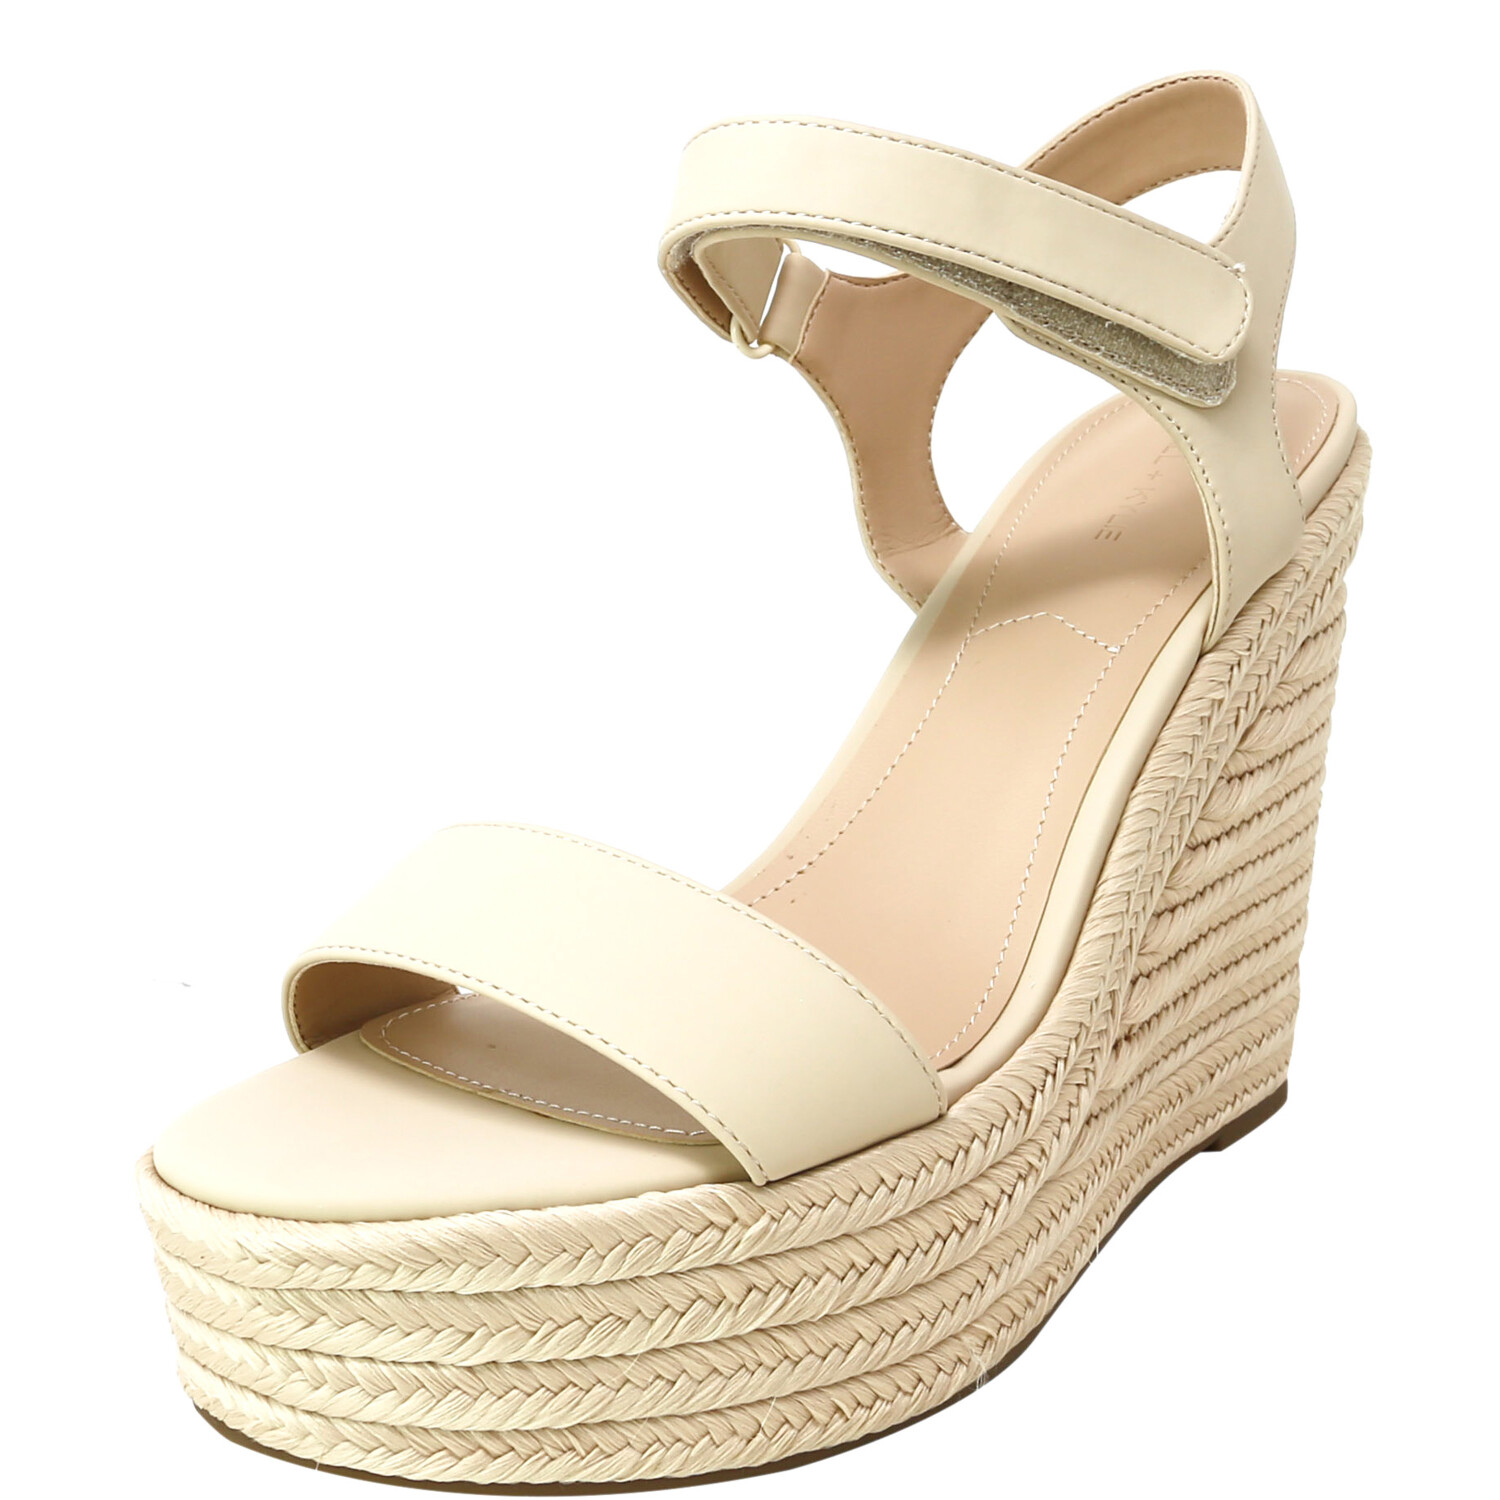 Kendall + Kylie Women's Grand Natural Light Ankle-High Wedged Sandal - 10M